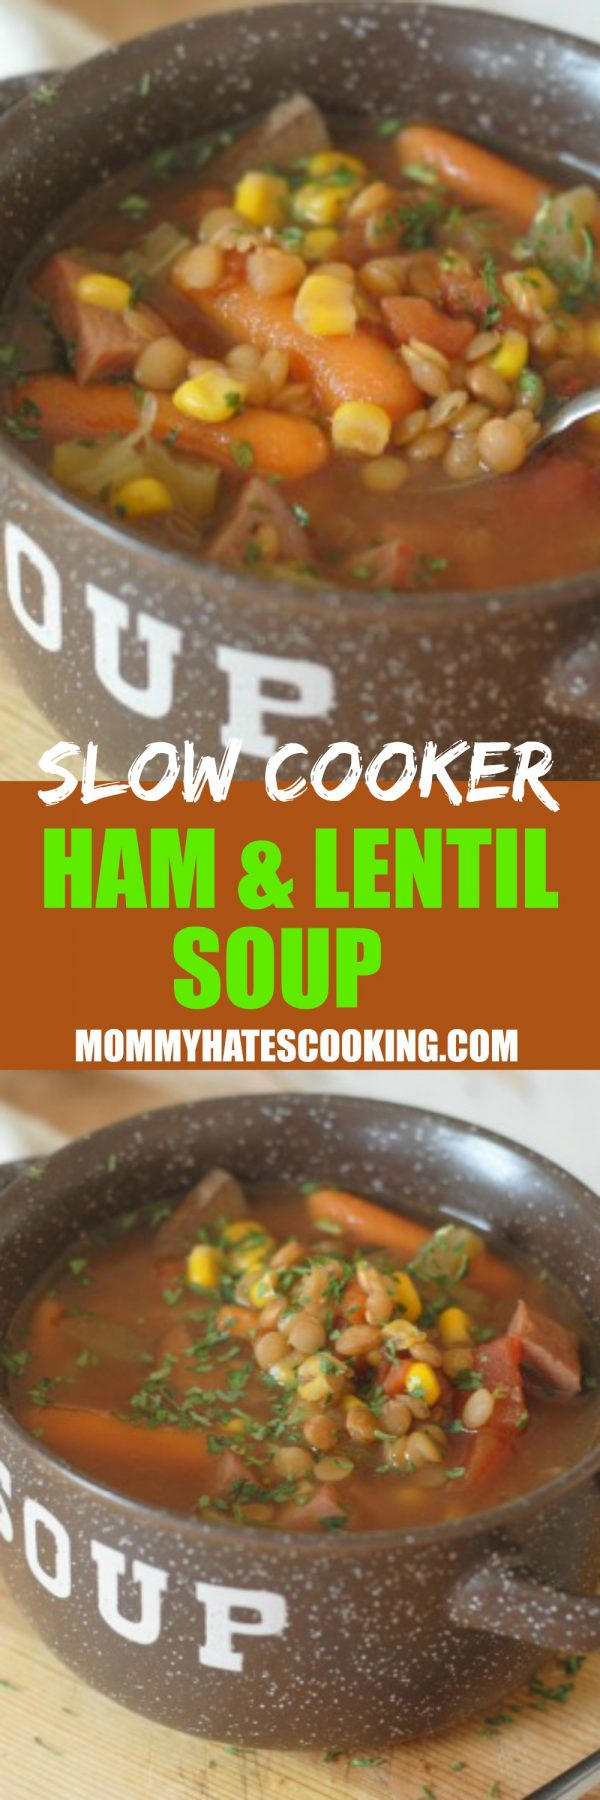 SLOW COOKER HAM AND LENTIL SOUP